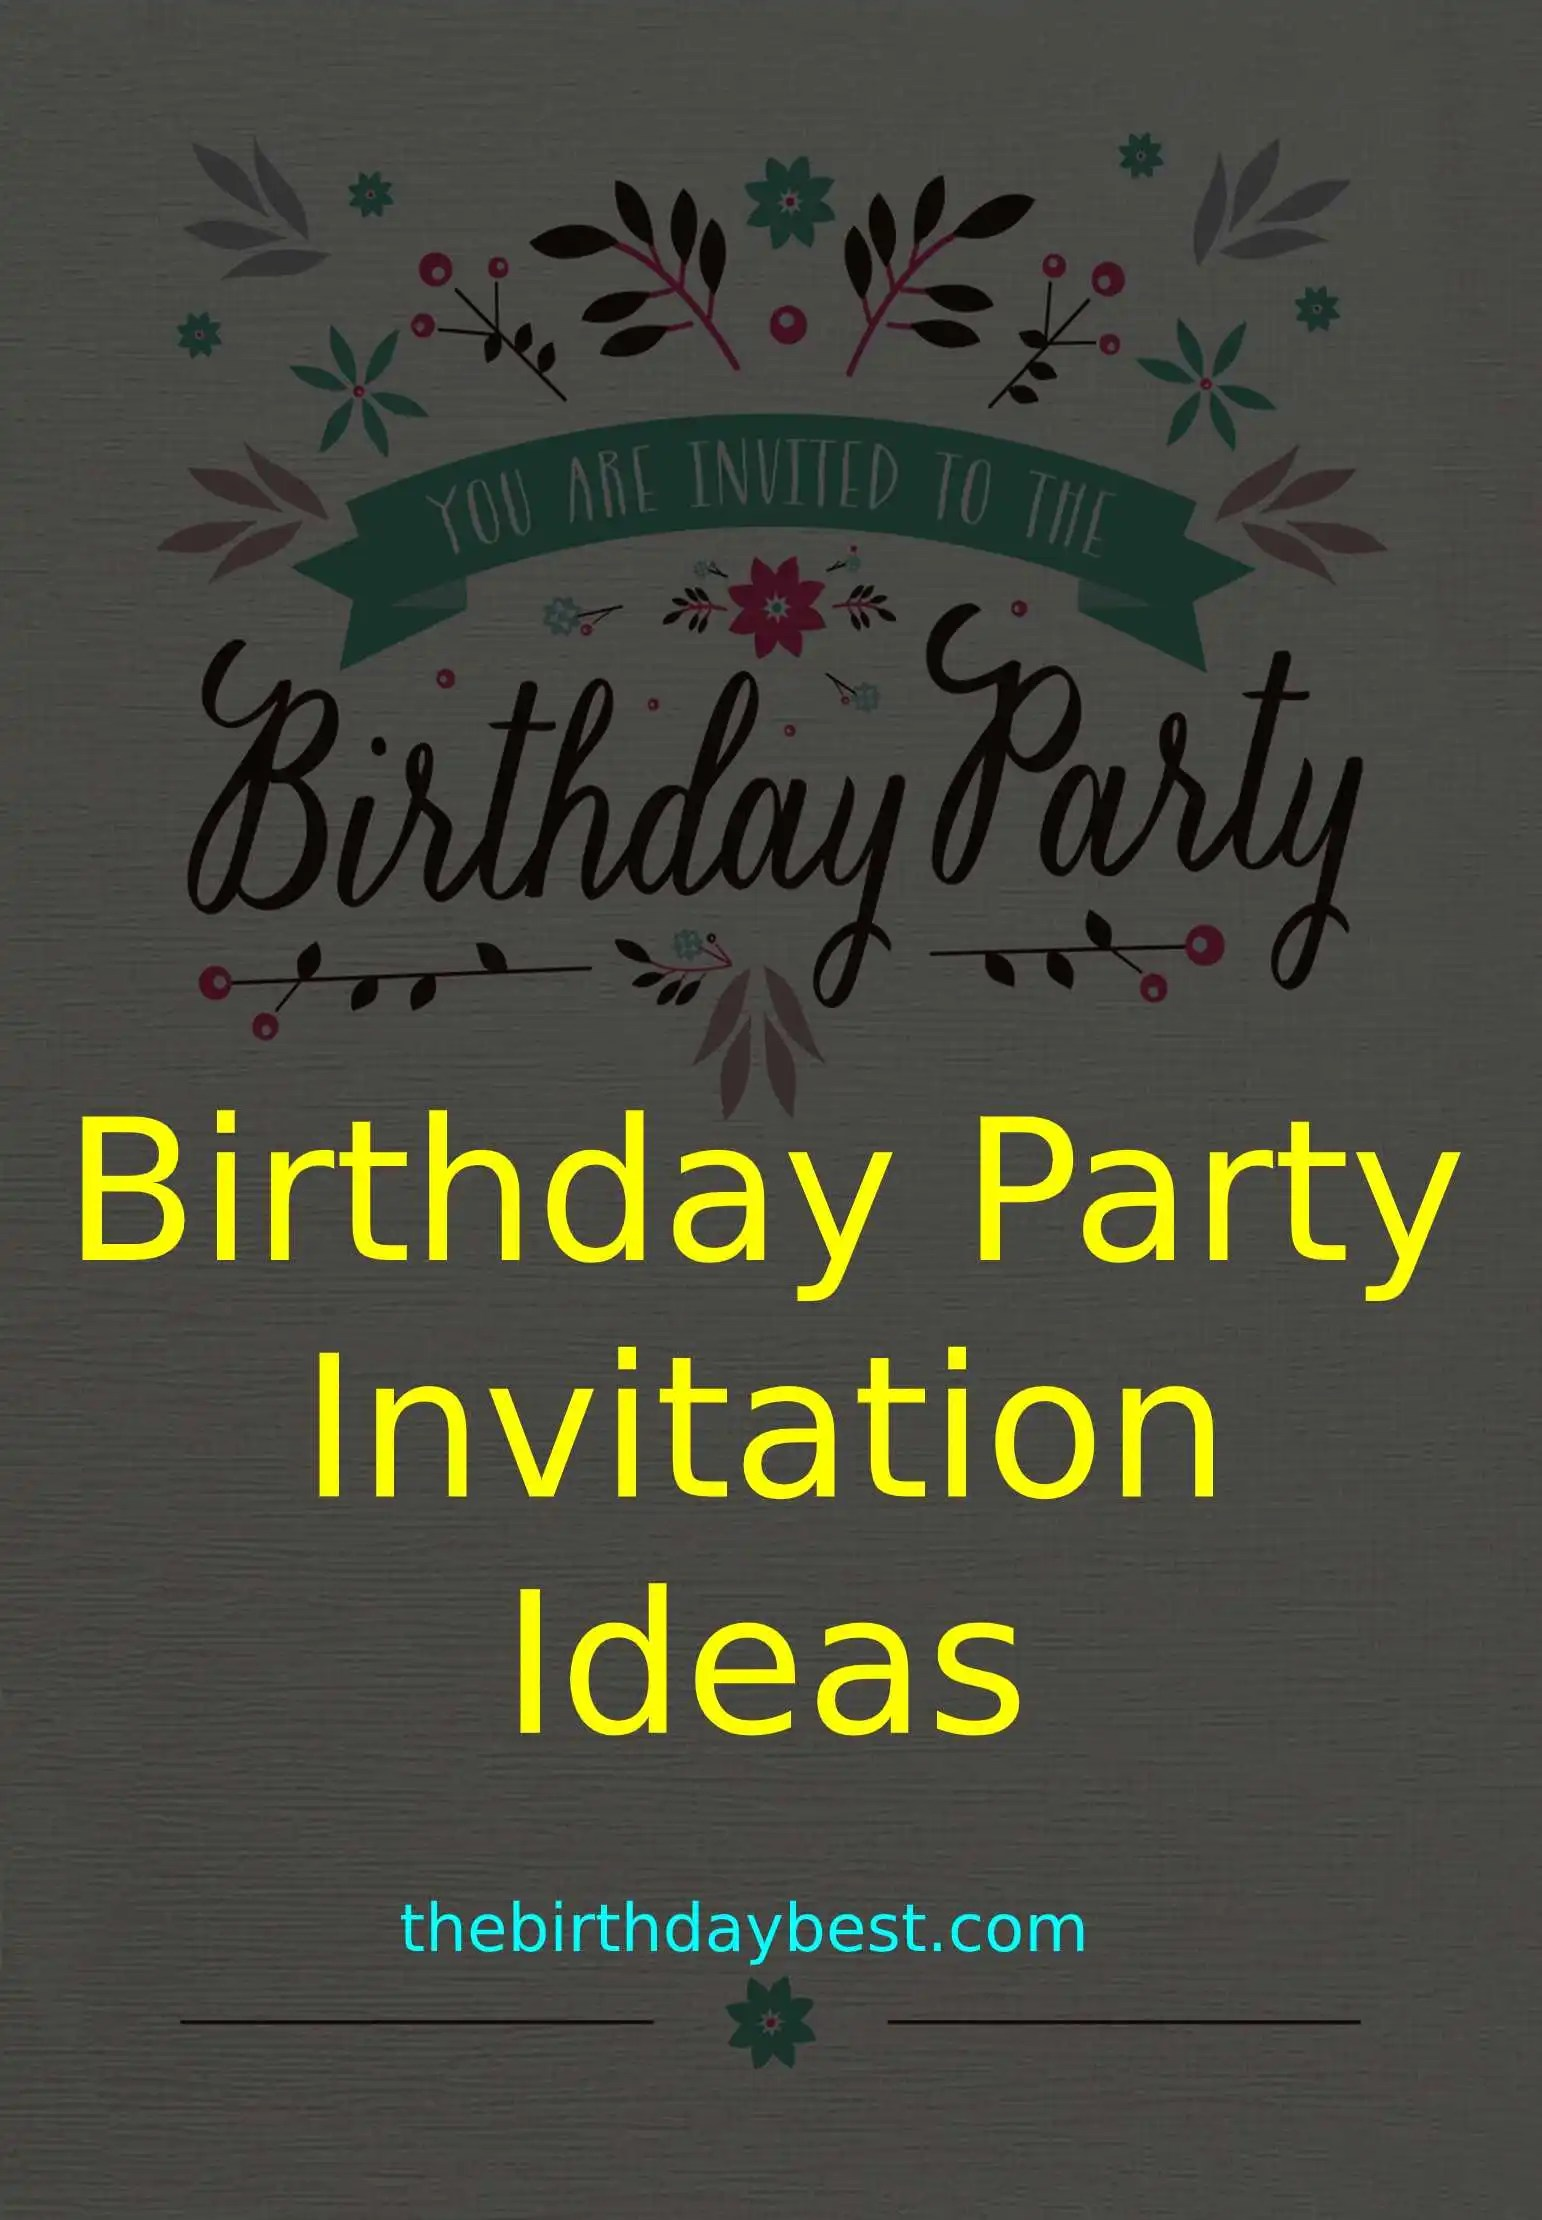 birthday party invitation ideas of 2021